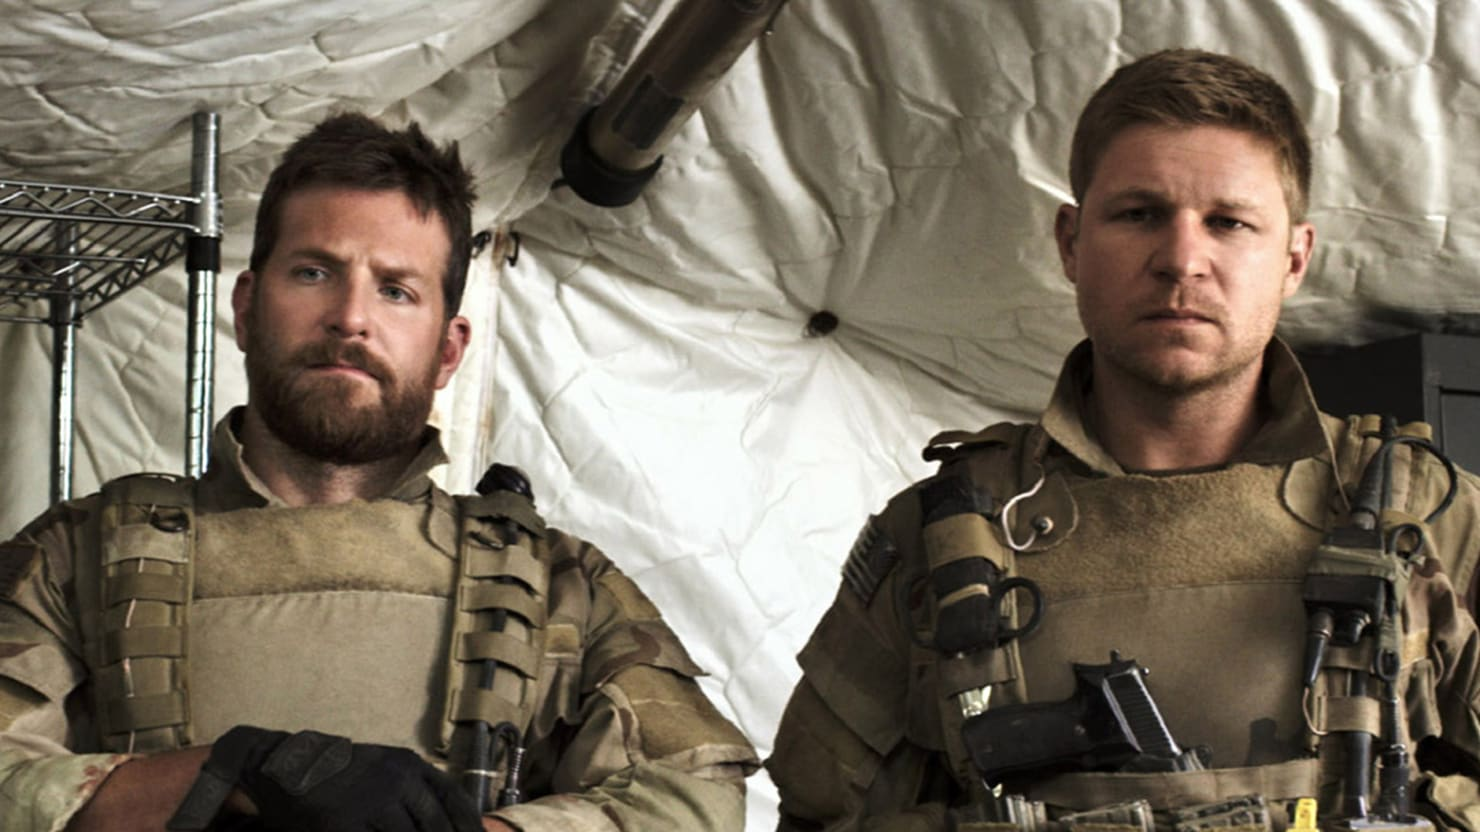 The 'American Sniper' I Knew: Kevin Lacz on Fellow Navy SEAL Chris Kyle and Movie Criticisms